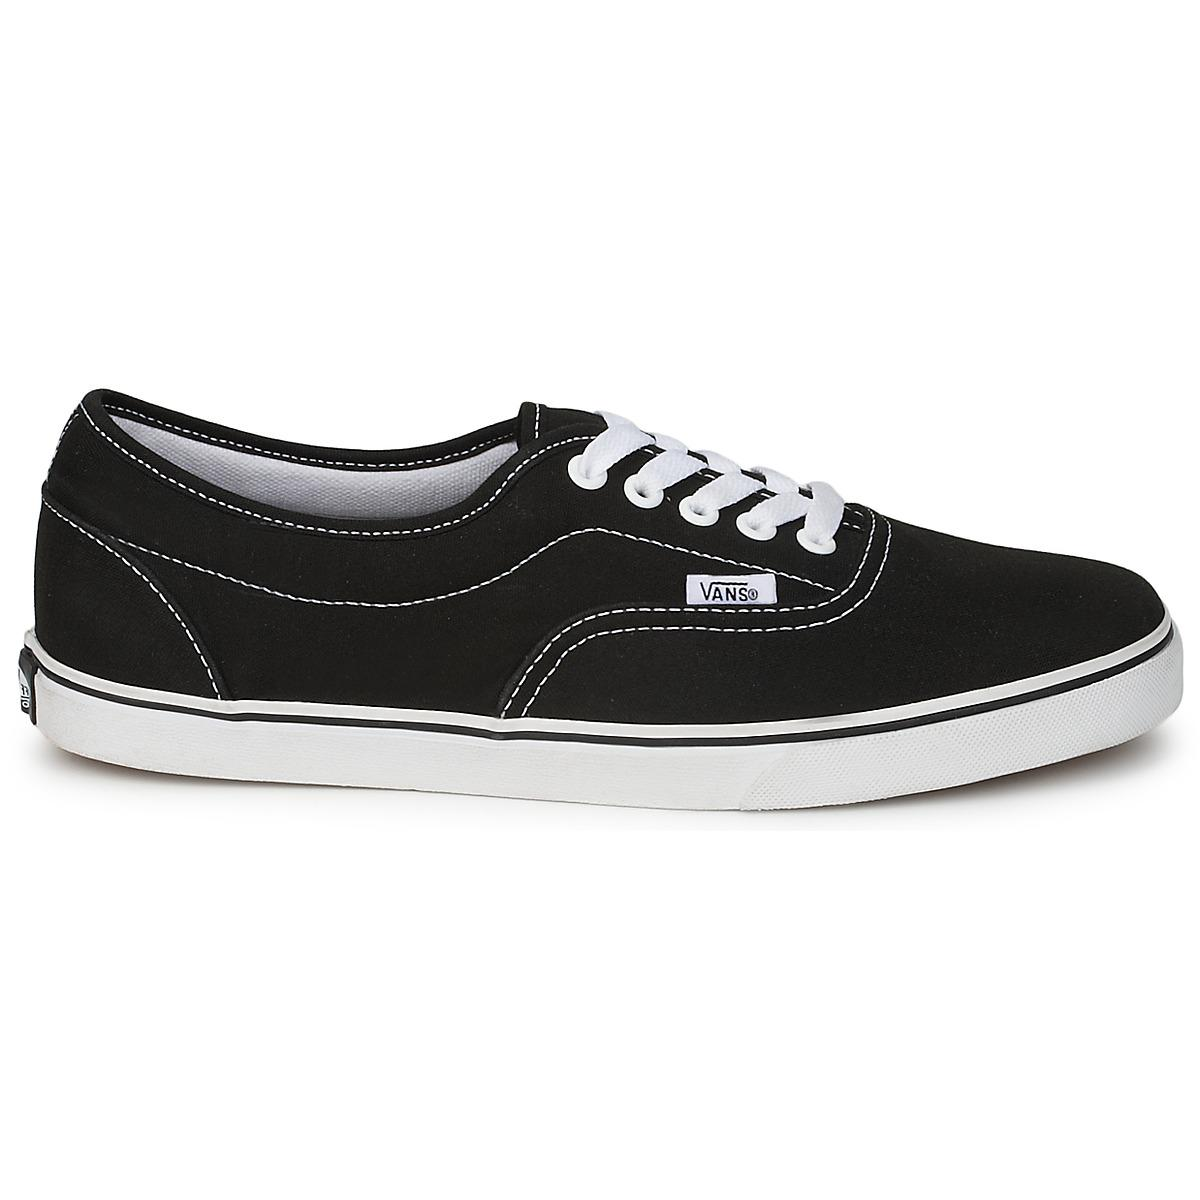 85349dc18e6 Vans - Black Lpe Shoes (trainers) - Lyst. View fullscreen